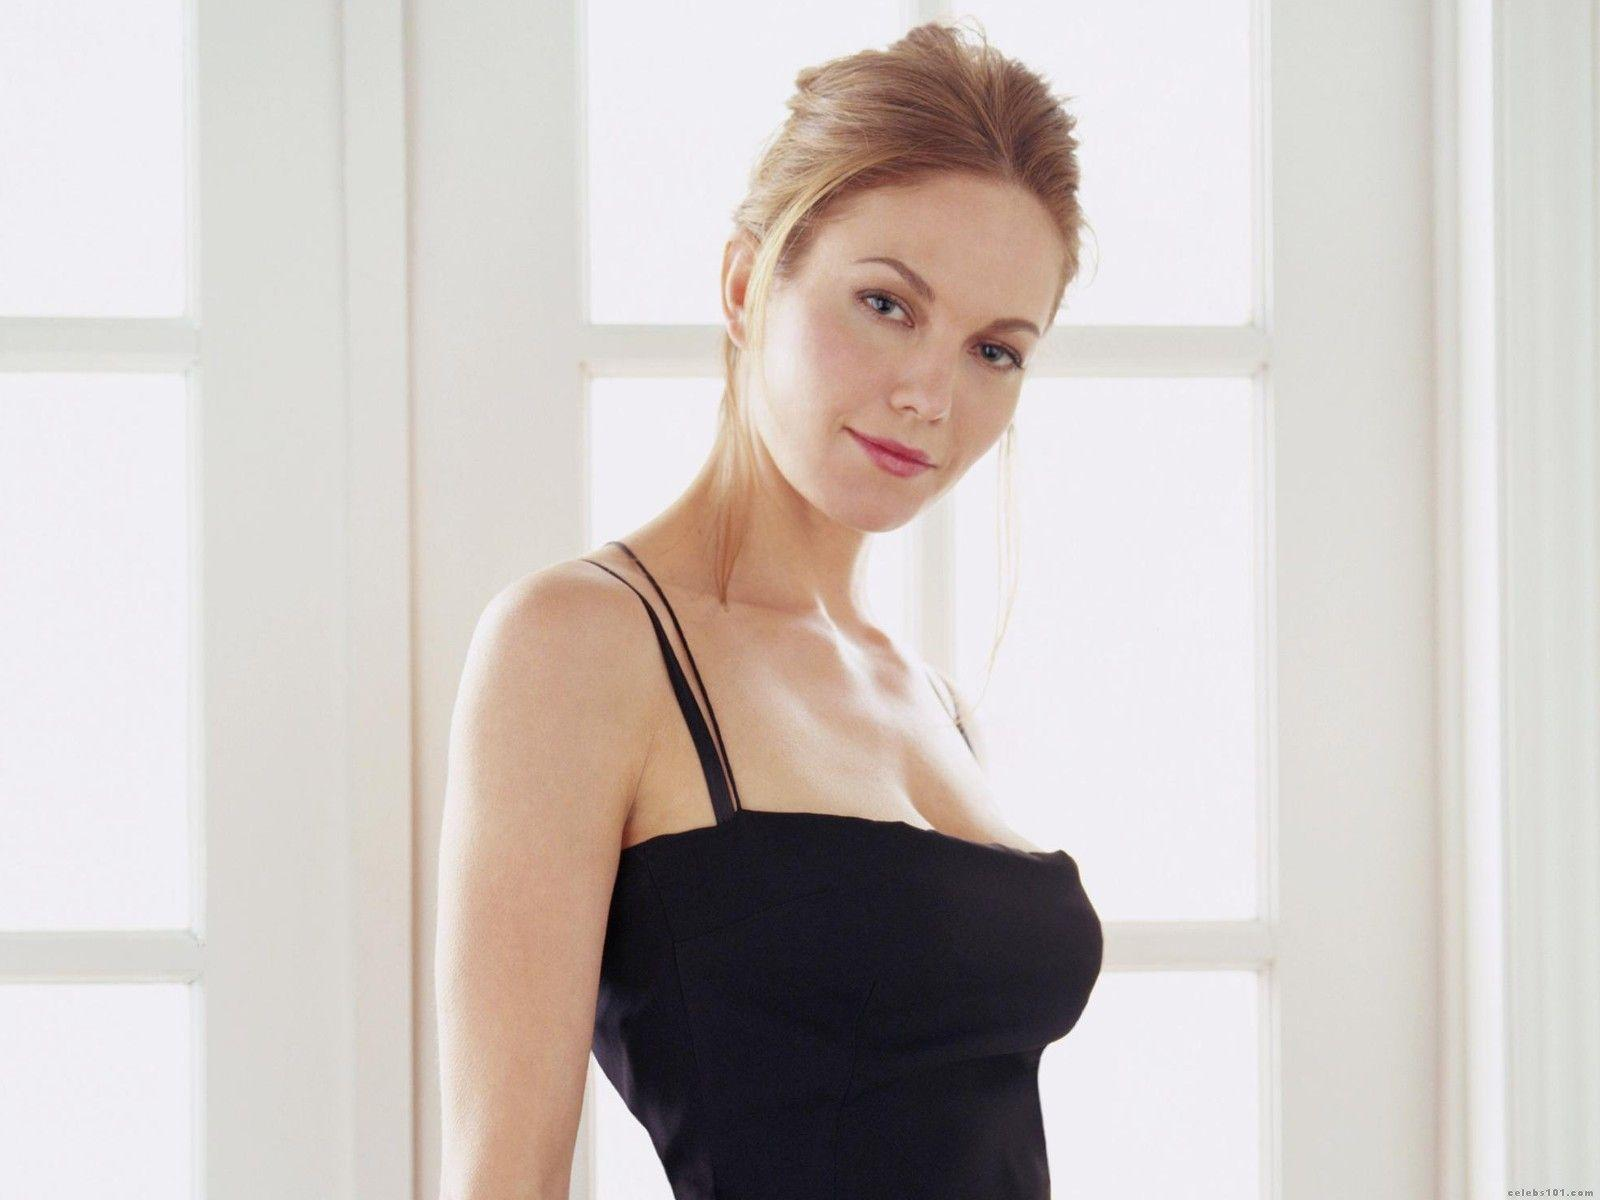 Celebrites Diane Lane nudes (38 photo), Ass, Paparazzi, Boobs, underwear 2019